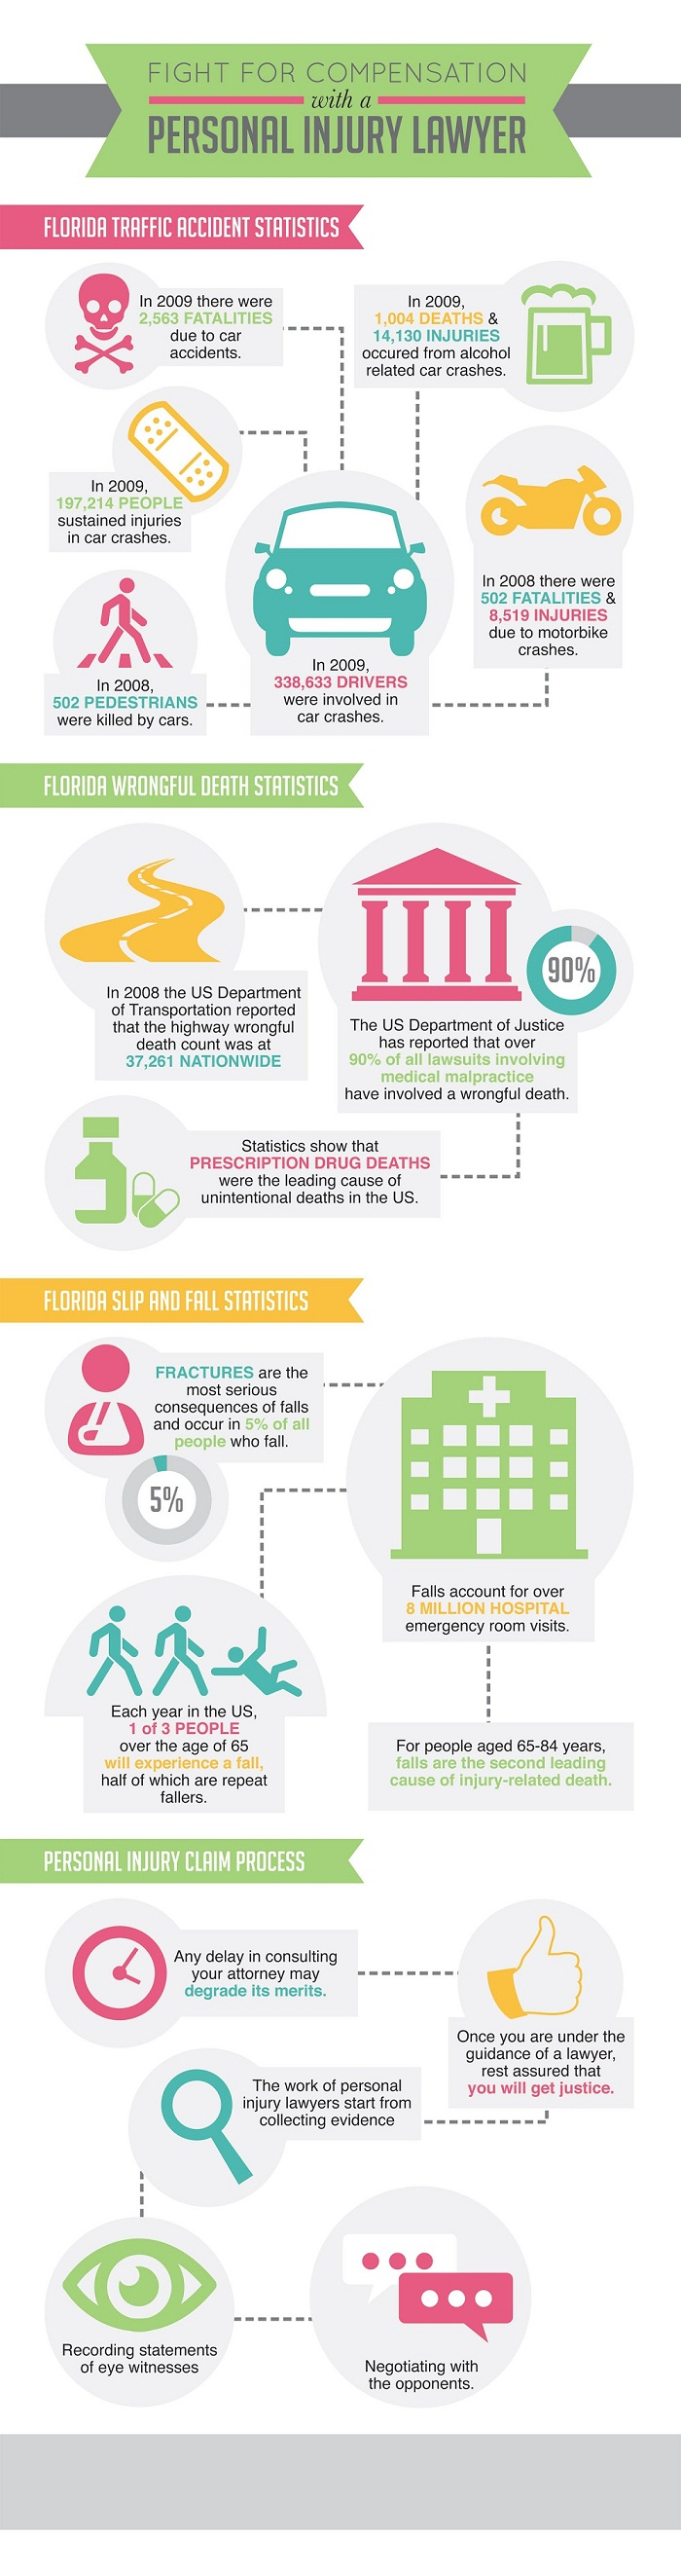 personal-injury-lawyer-infographic_5243f